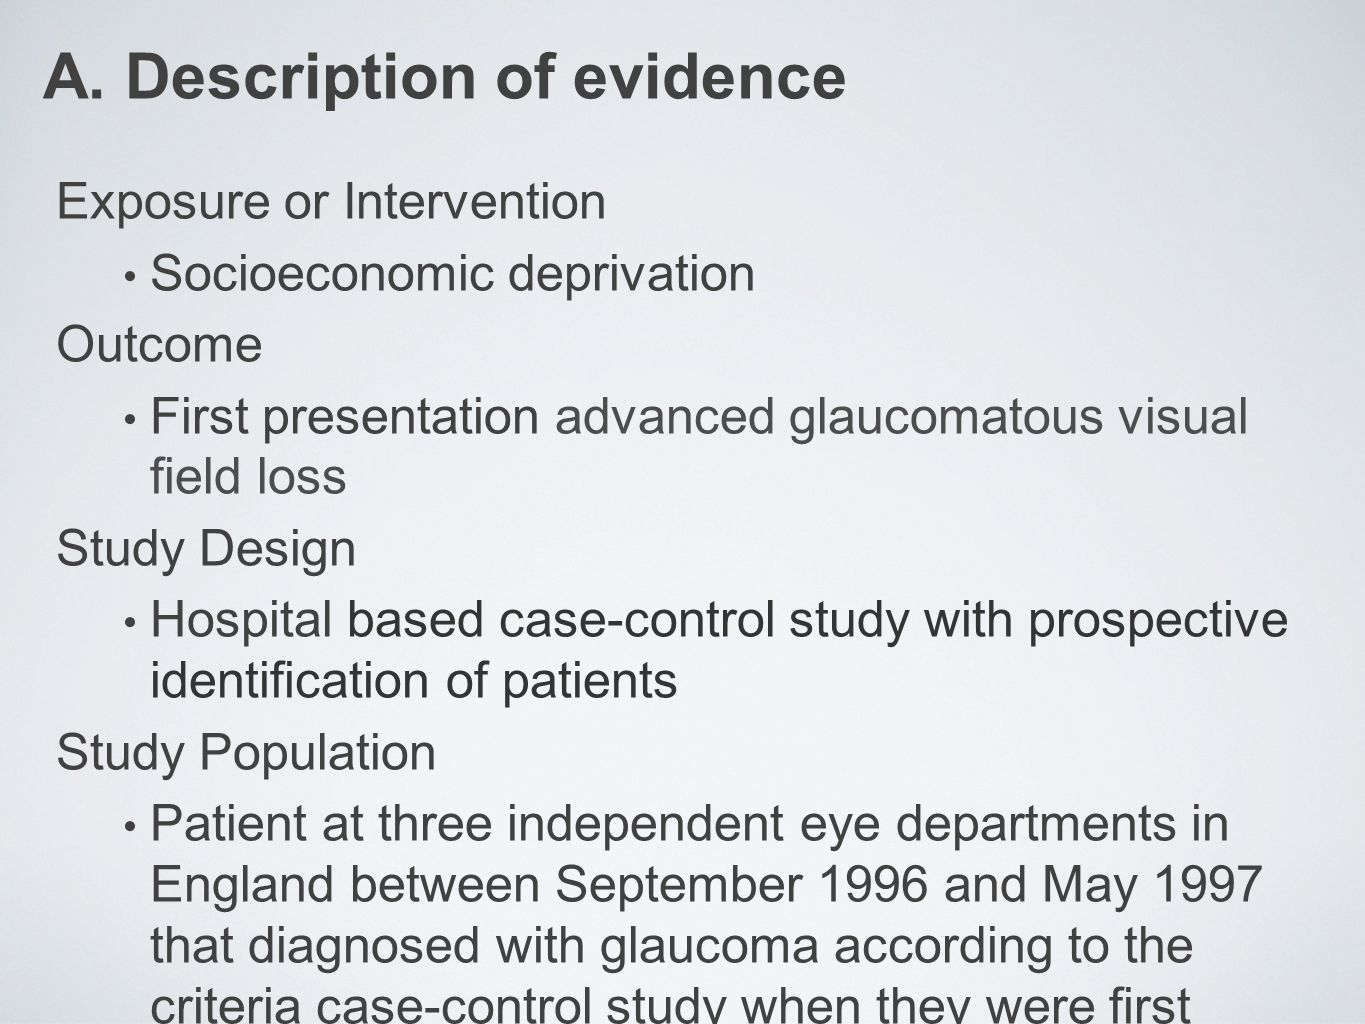 Source population: Patient at 3 independent eye departements in England (Morfields Eye Hospital, London; Sunderland Eye Infirmary, Sunderland; Harold Wood Hospital, Essex) between September 1996 - May 1997 Eligible population: Patient diagnosed with glaucoma according to case-control criteria when they were first examined by the ophthalmologist Cases : 110 persons based on case-control study criteria and agreed to involved Exclude: those with previous definite or possible diagnosis of glaucoma or ocular hypertension Controls : 110 persons based on case-control study criteria and agreed to involved Exclude: those with problems performing the visual field test Interviewed by trained interviewer masked to the case- control status No losses to telephone follow up Total: 220 participants